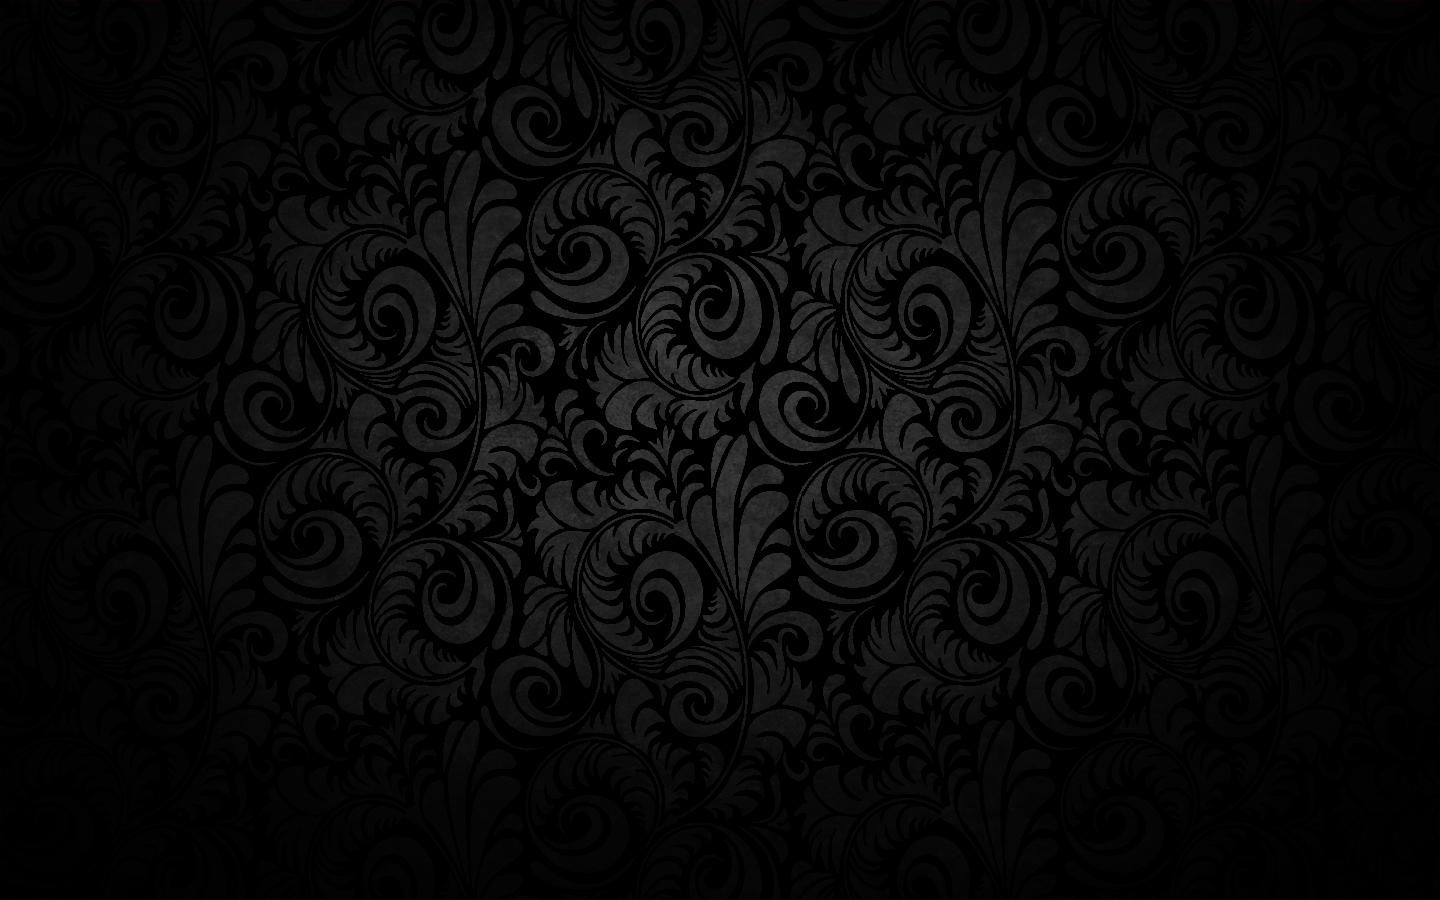 Nickname   Amazing Black Pattern Design Resolotion   1440px 1440x900